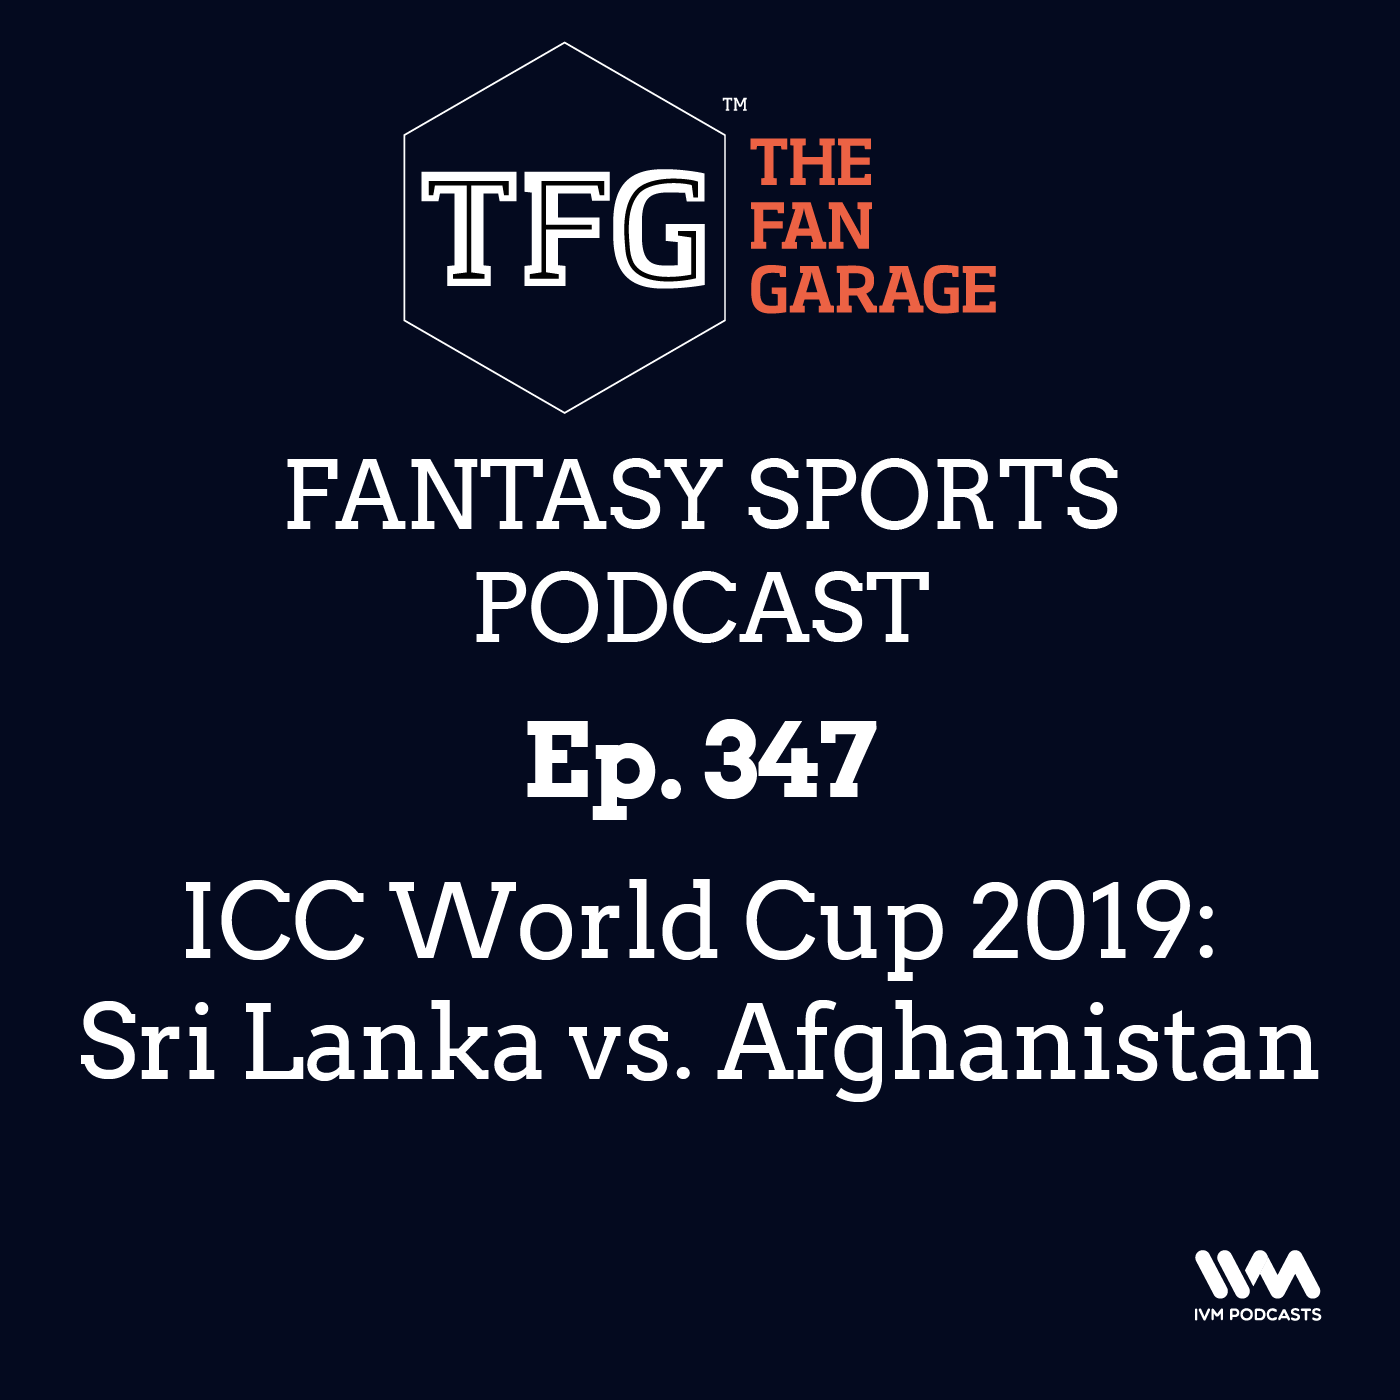 TFG Fantasy Sports Podcast Ep. 347: ICC World Cup 2019: Sri Lanka vs. Afghanistan